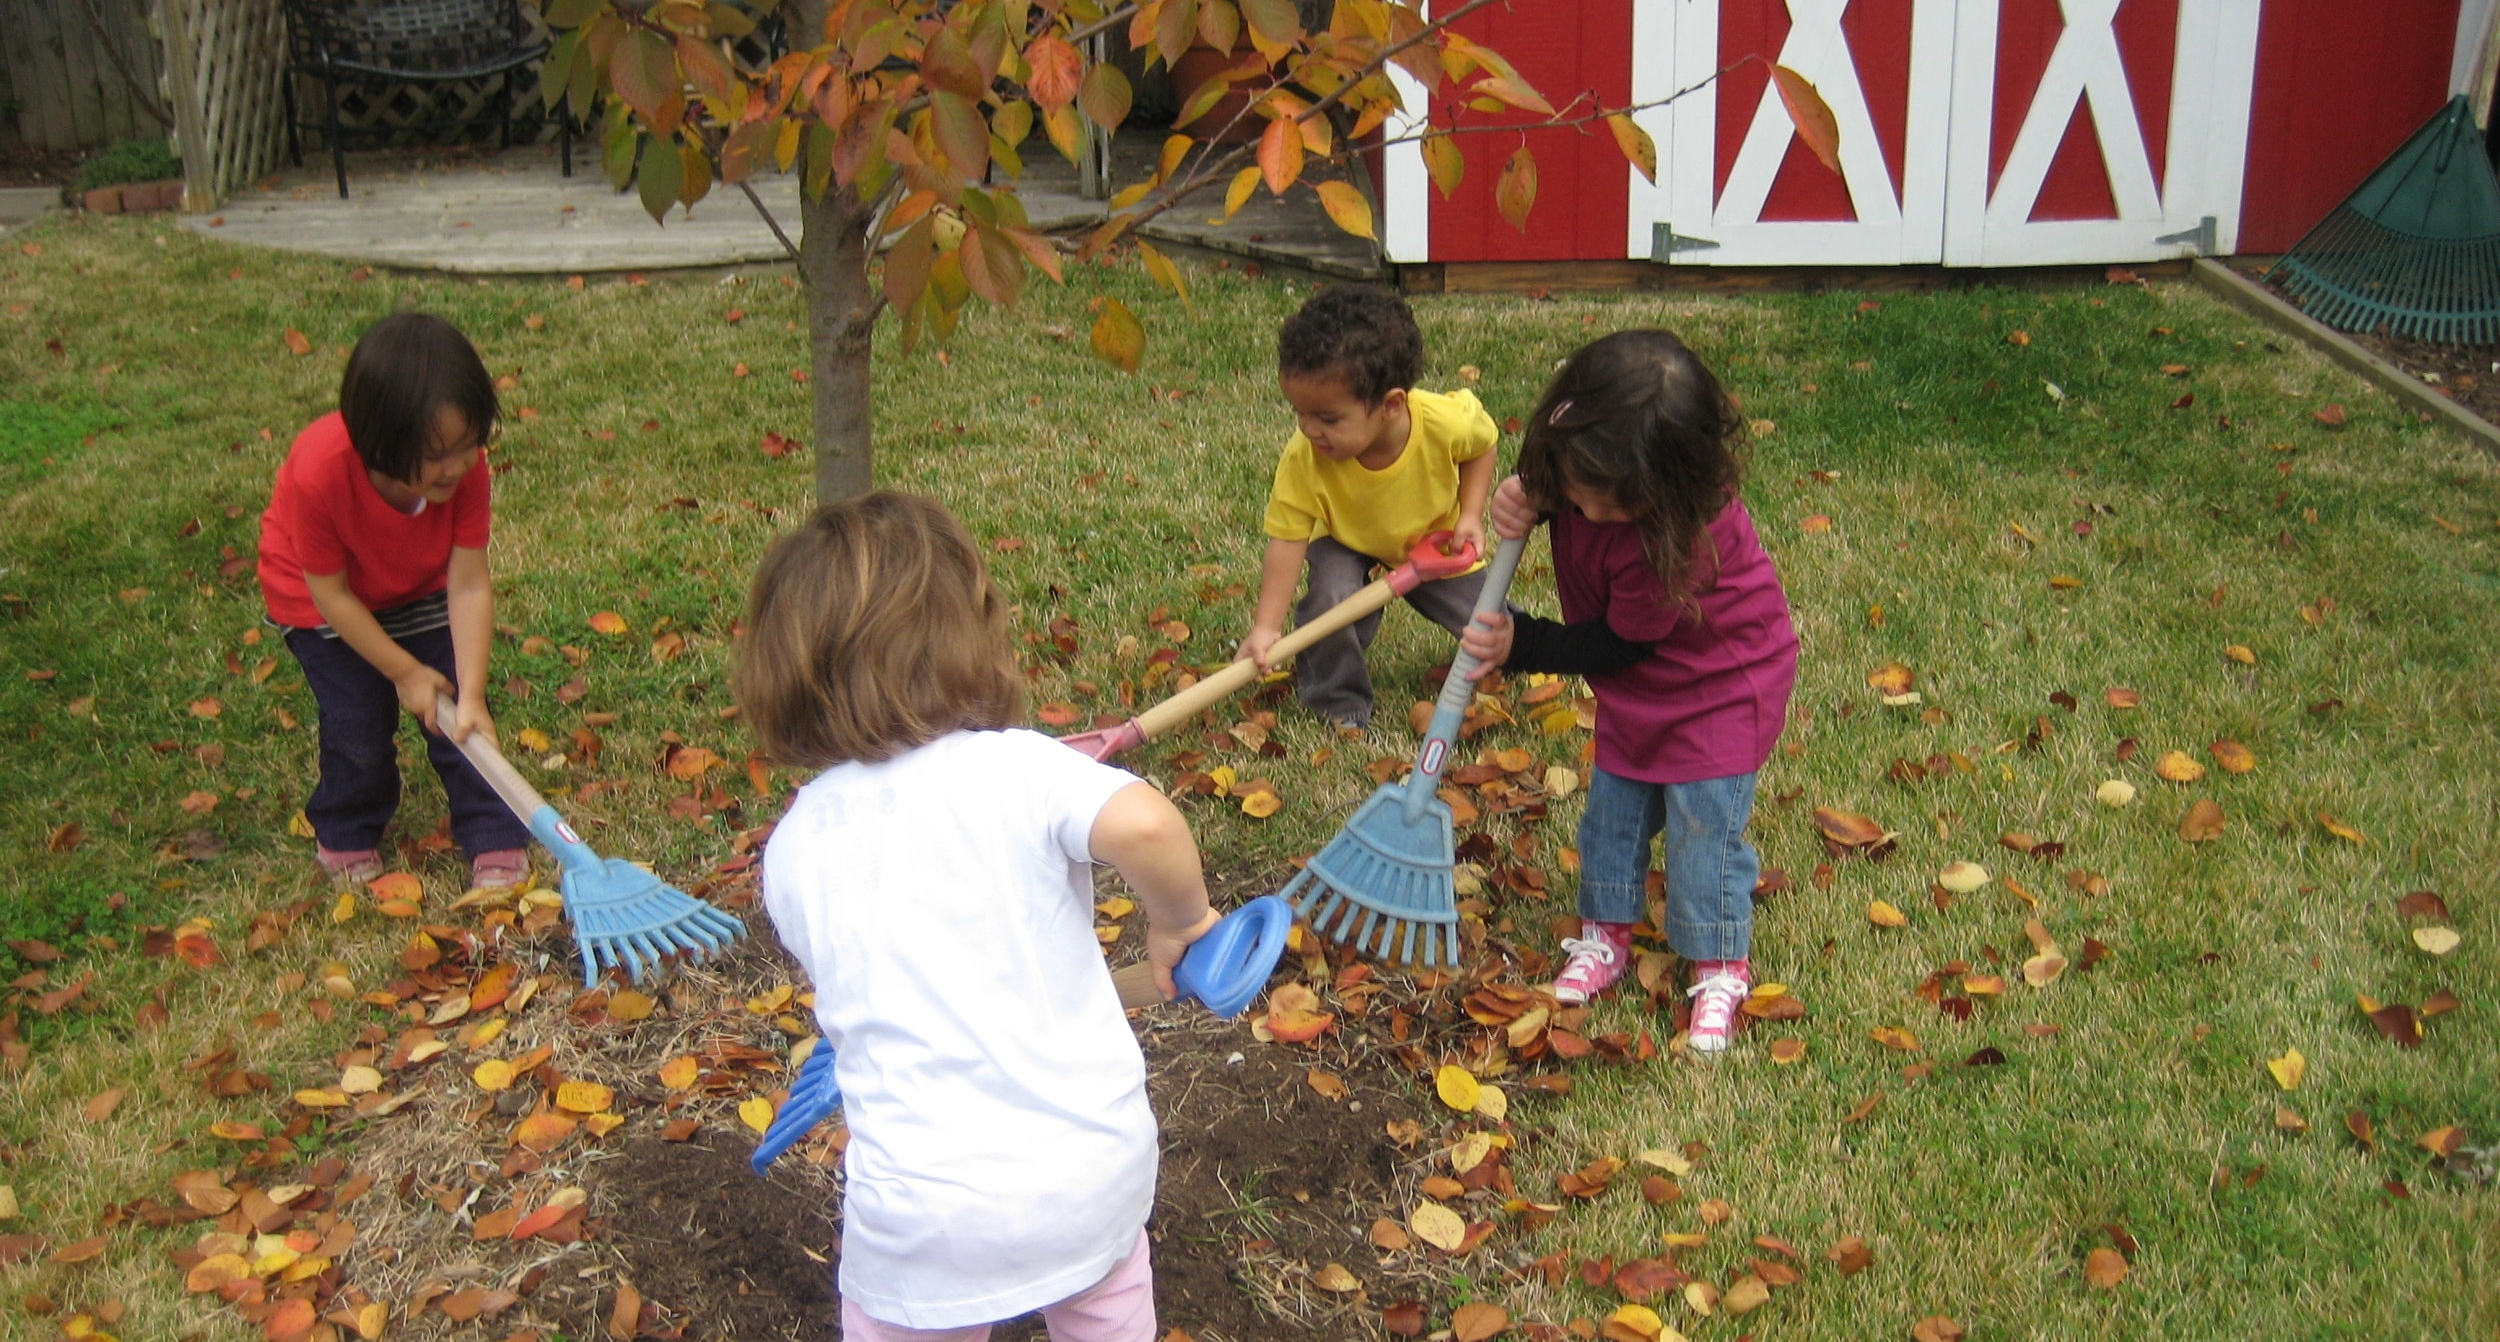 Taking care of the garden in Fall.